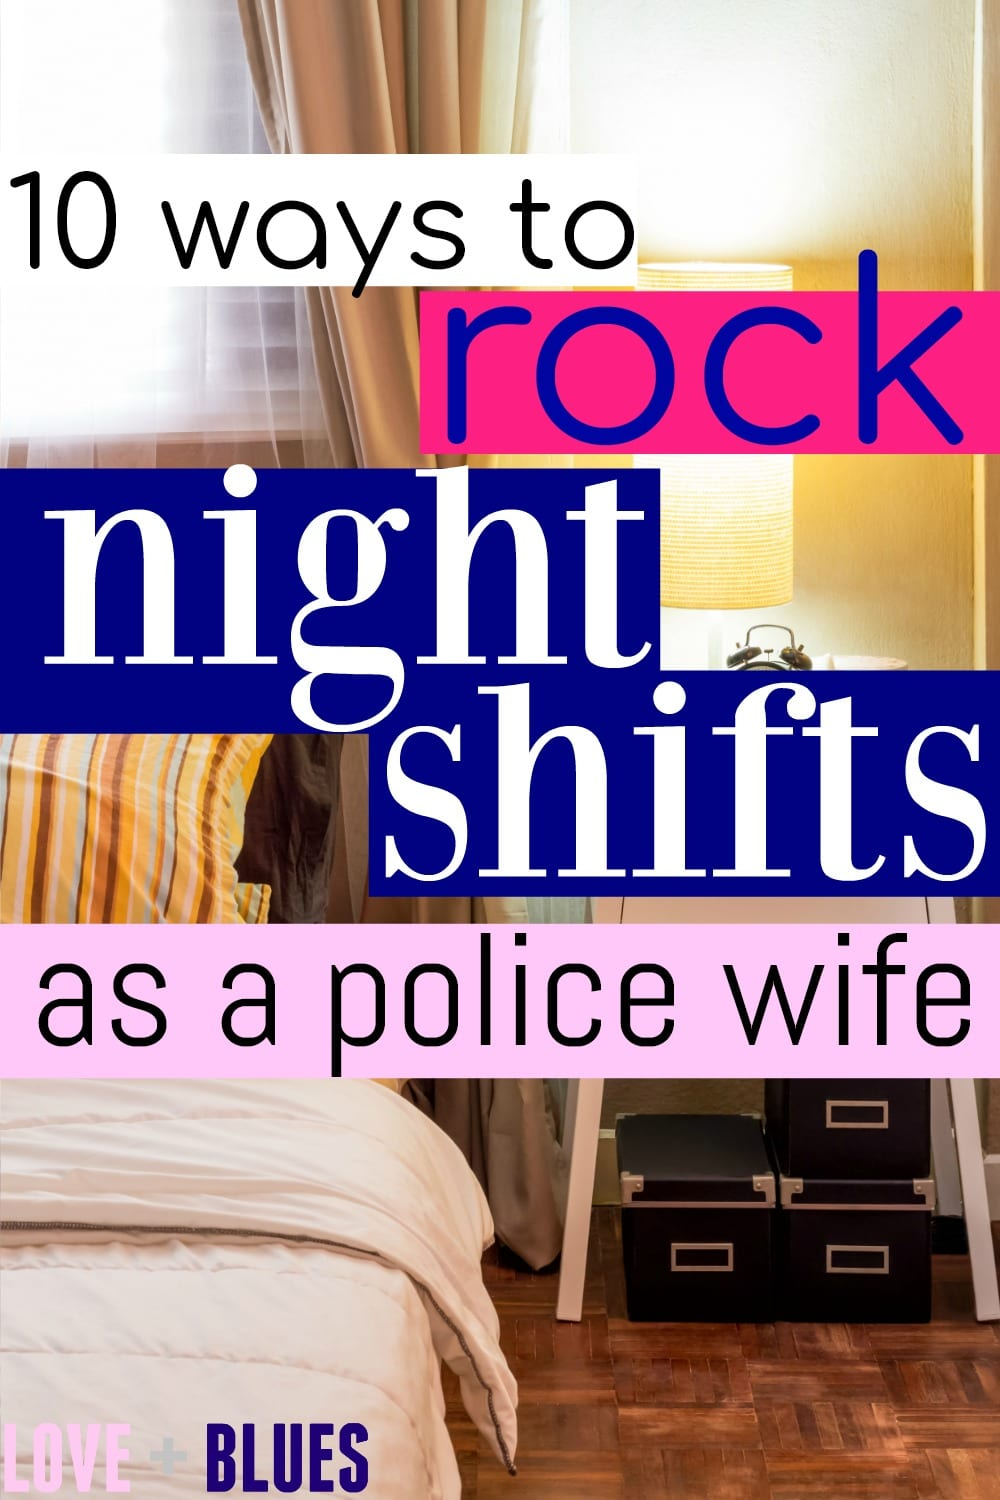 Not gonna lie it SUCKS when your husband works nights... but I love this. I'm kinda struggling right now with his night shift schedule but I want to learn to embrace it! Cuz it's not changing anytime soon lol. #policewifeproblems #policewifelife #lawenforcement